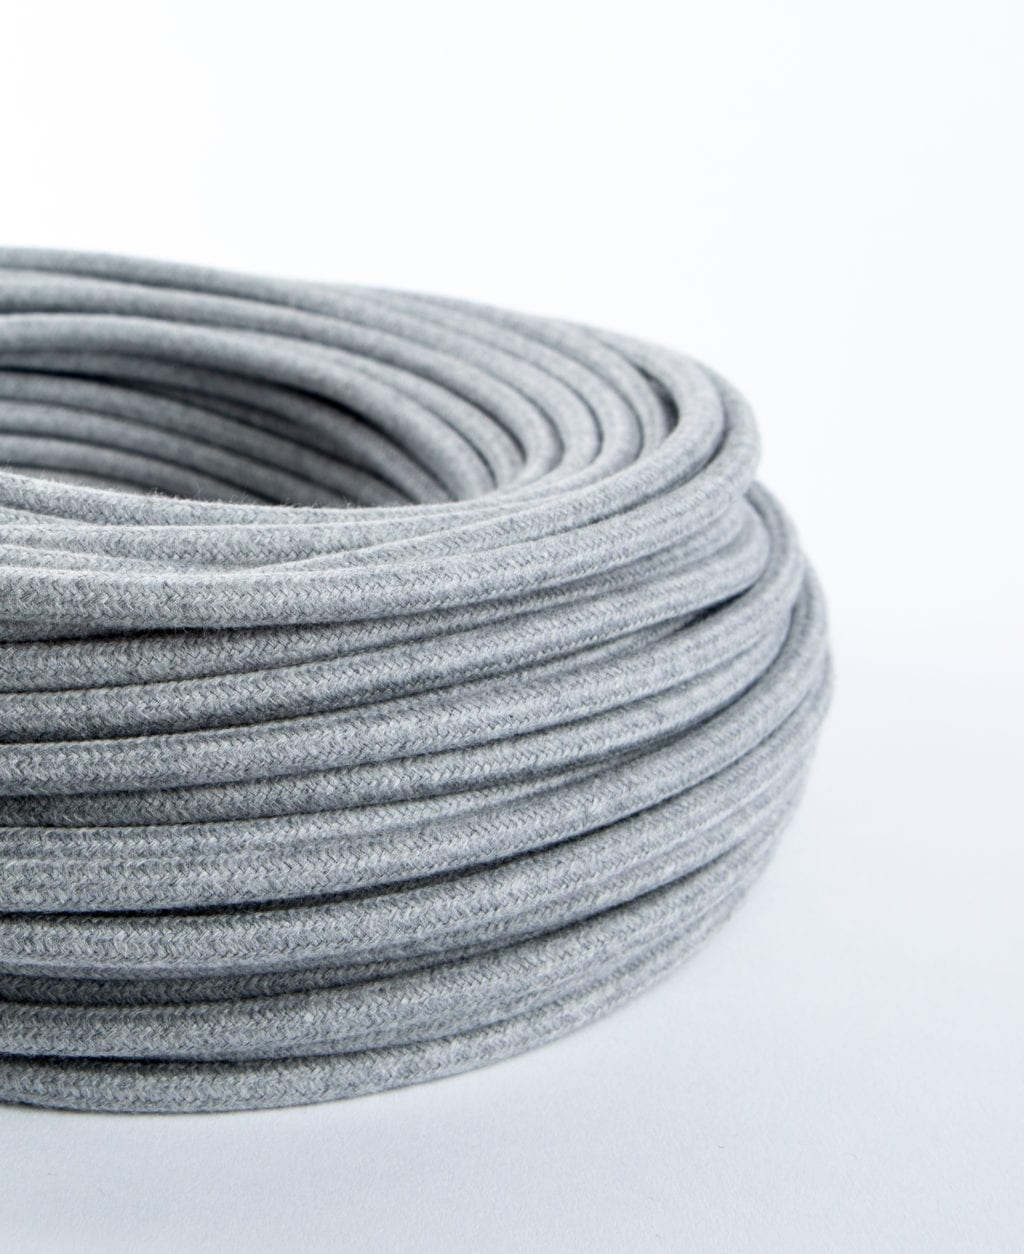 closeup of felt grey fabric cable coil against white background